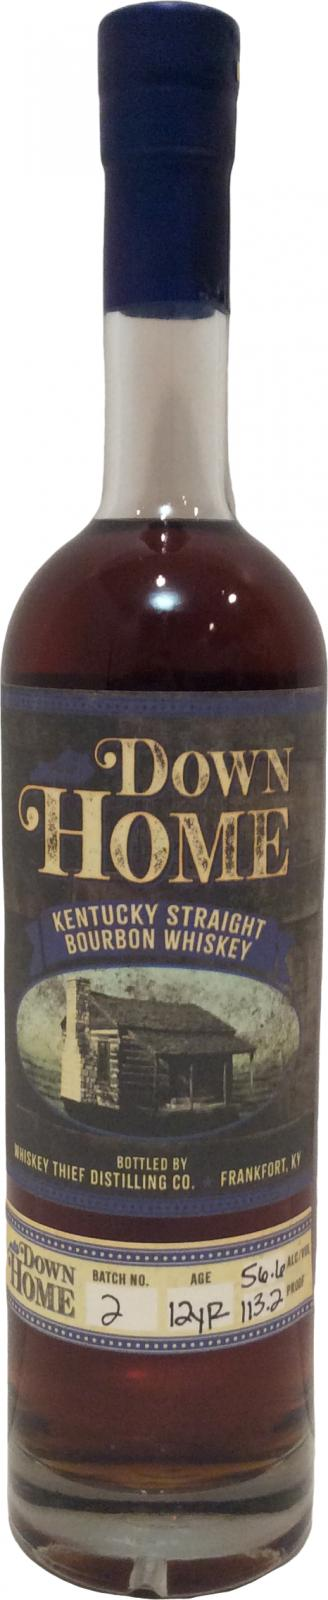 Down Home Bourbon 12 Year Batch #2 113.2 proof Kentucky Straight Bourbon Whiskey